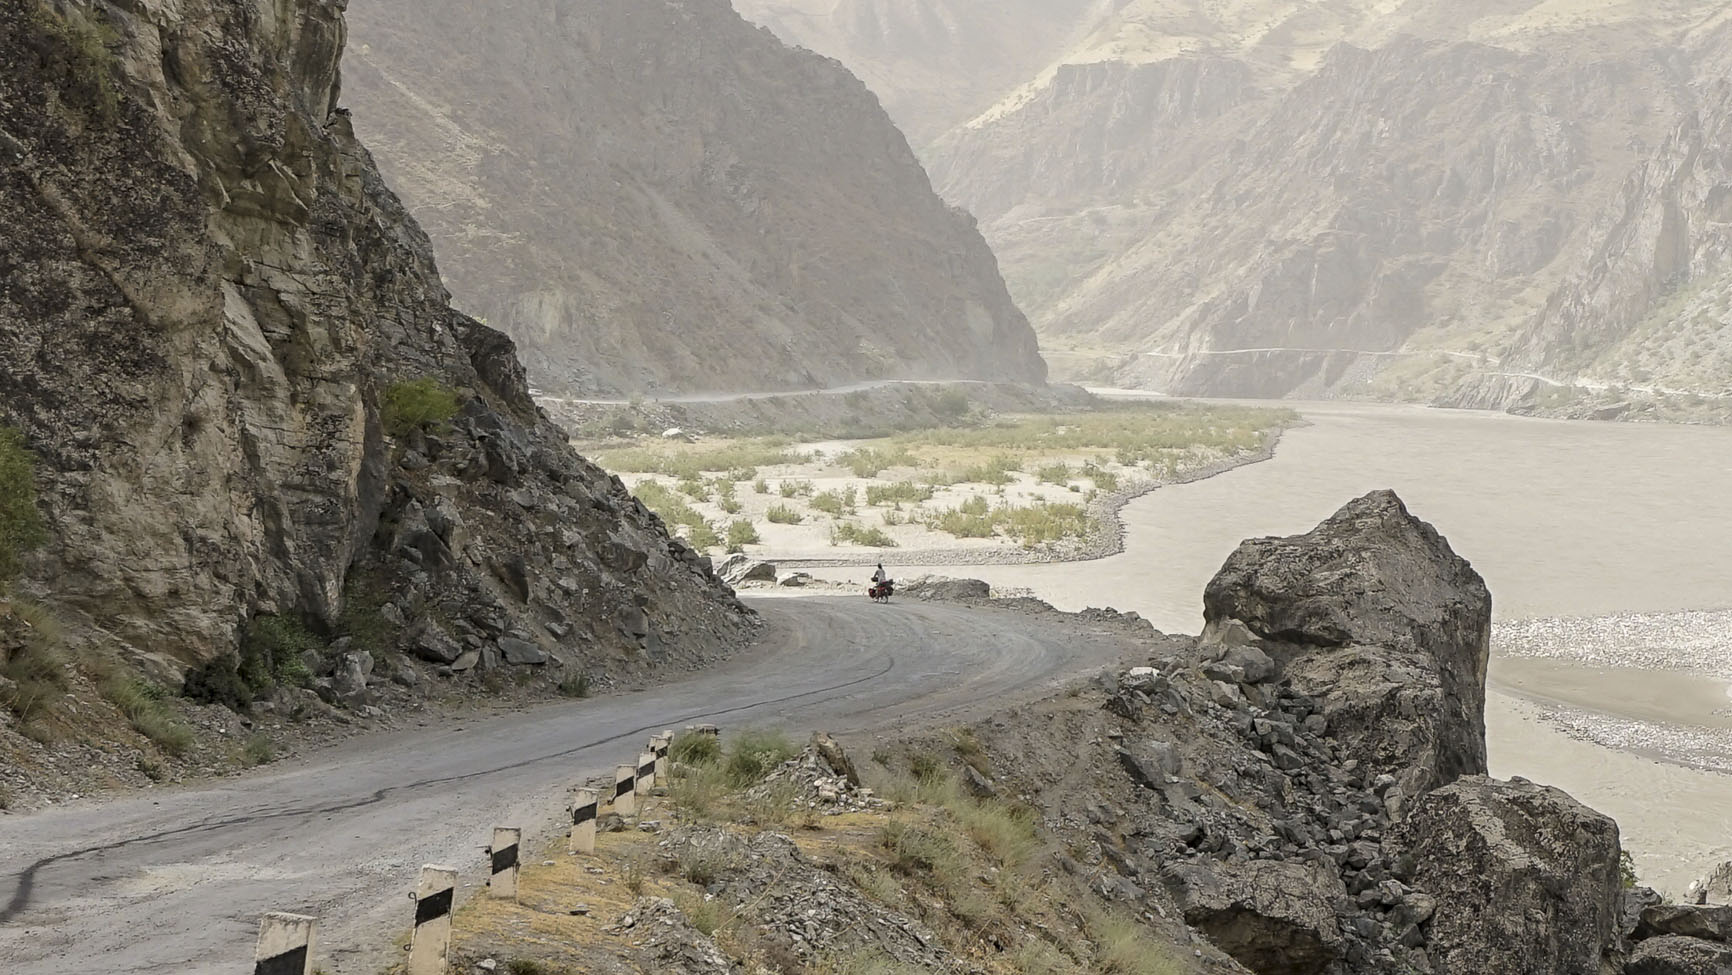 Ruth Newton cycling in Central Asia